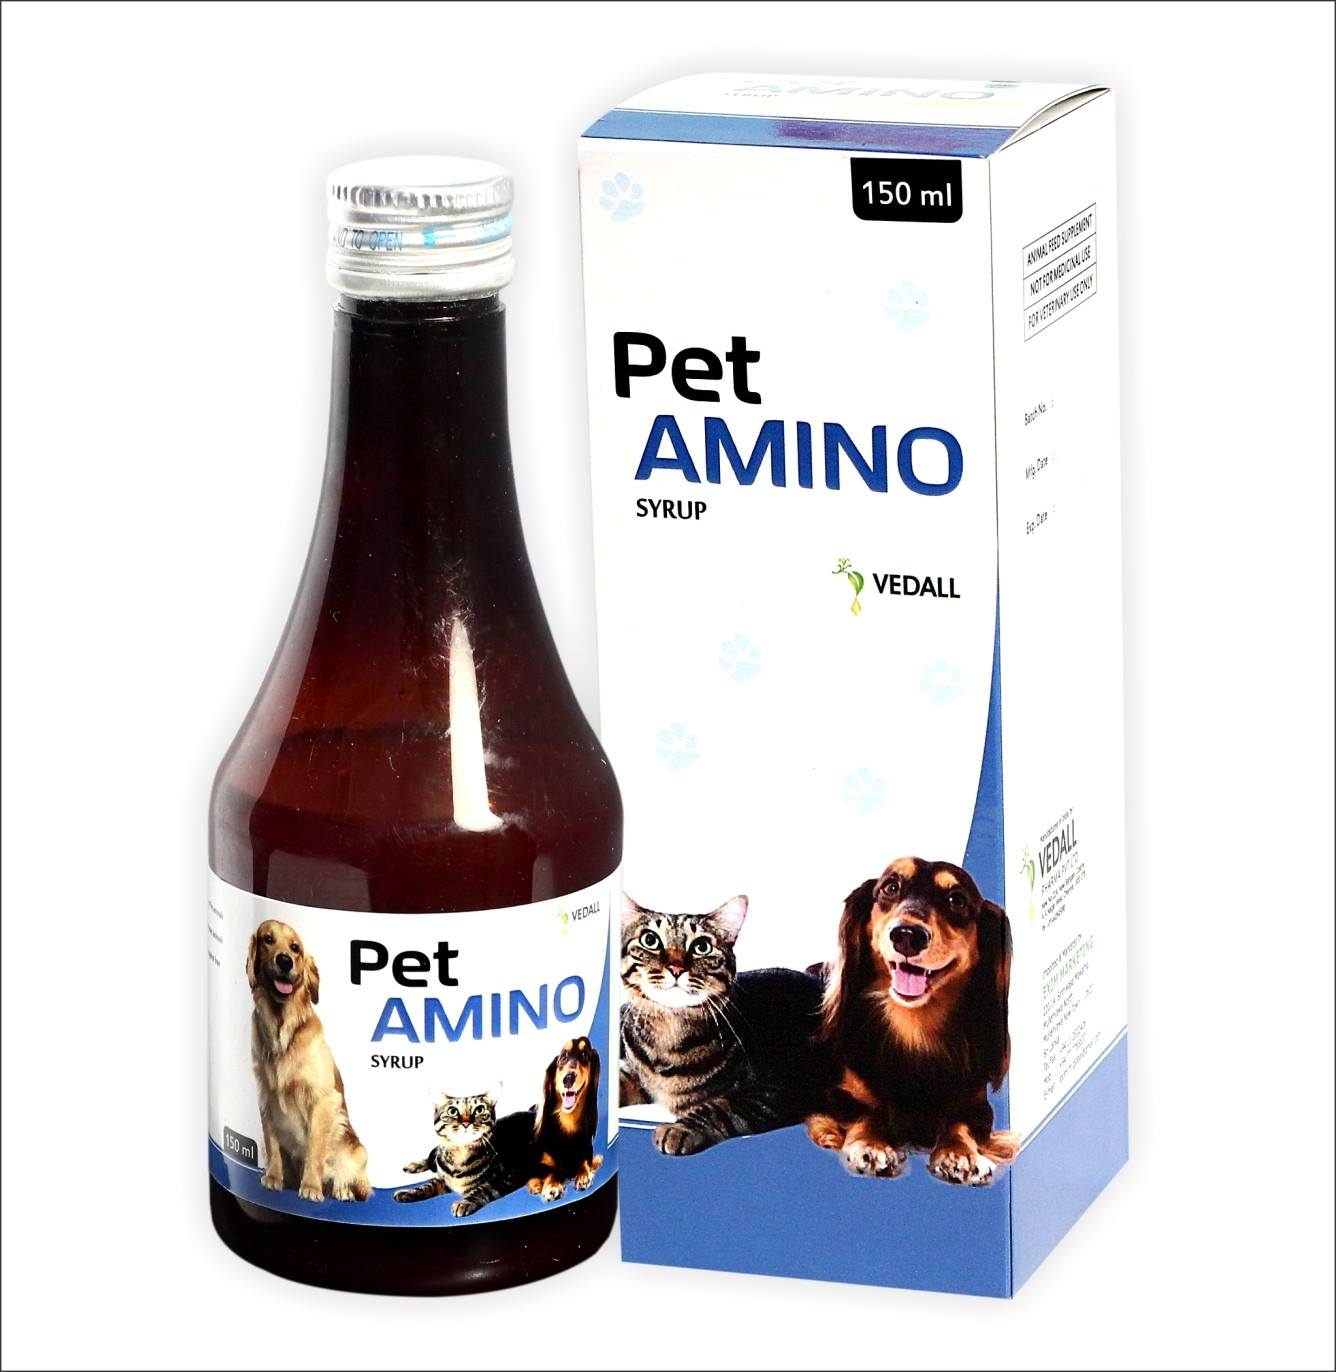 Petamino - India Dog Nutritional Supplements suppliers